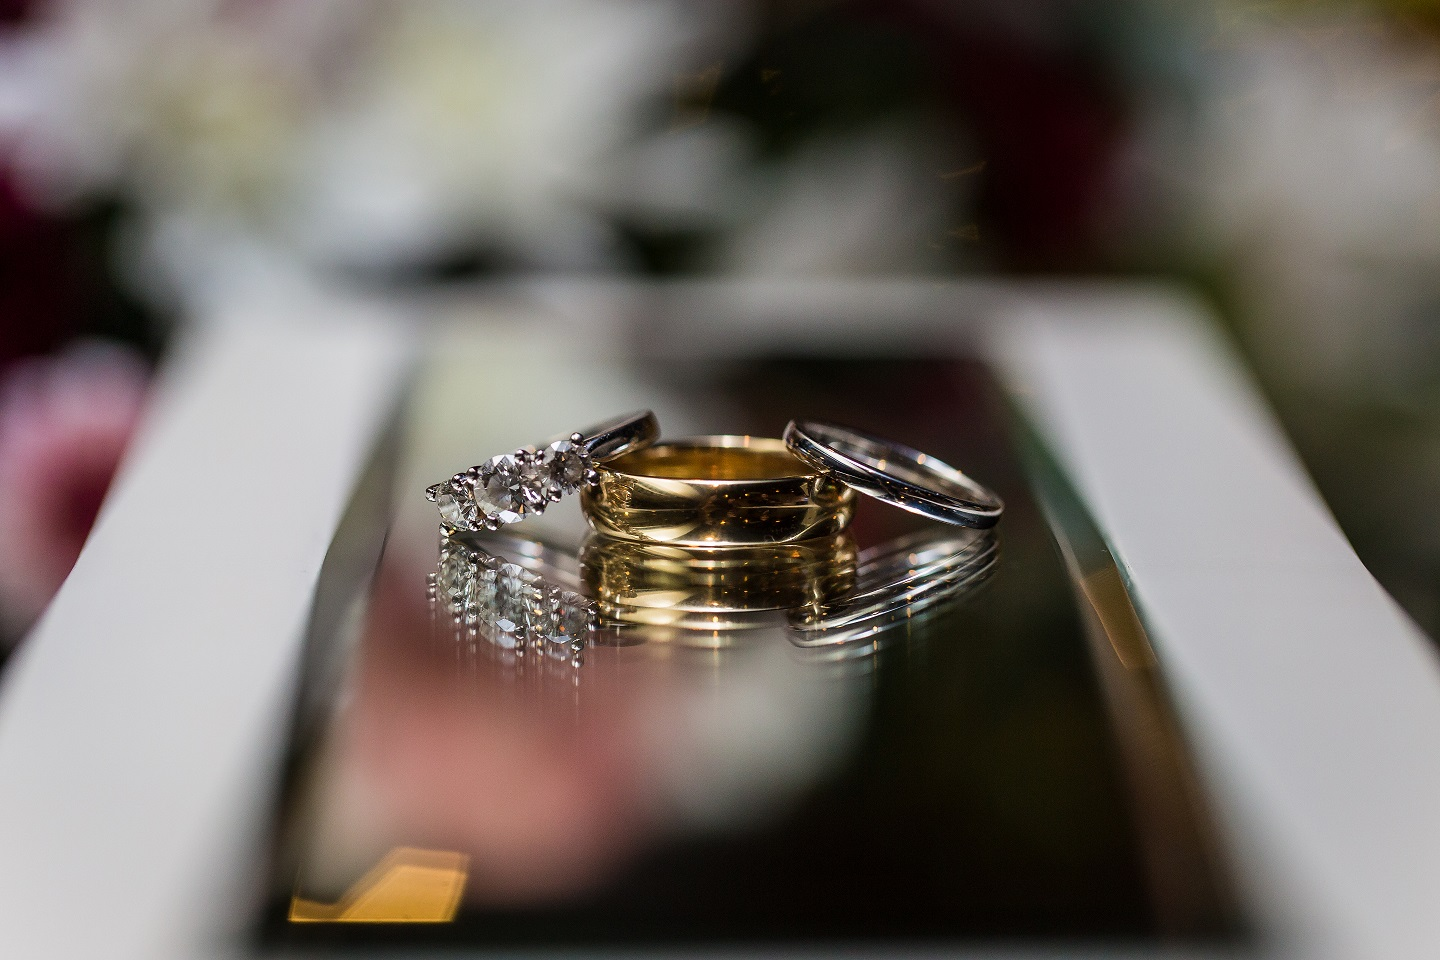 Zack and Kate's complete engagement and wedding ring set.  Photo:  Dreamlife Photos Brisbane